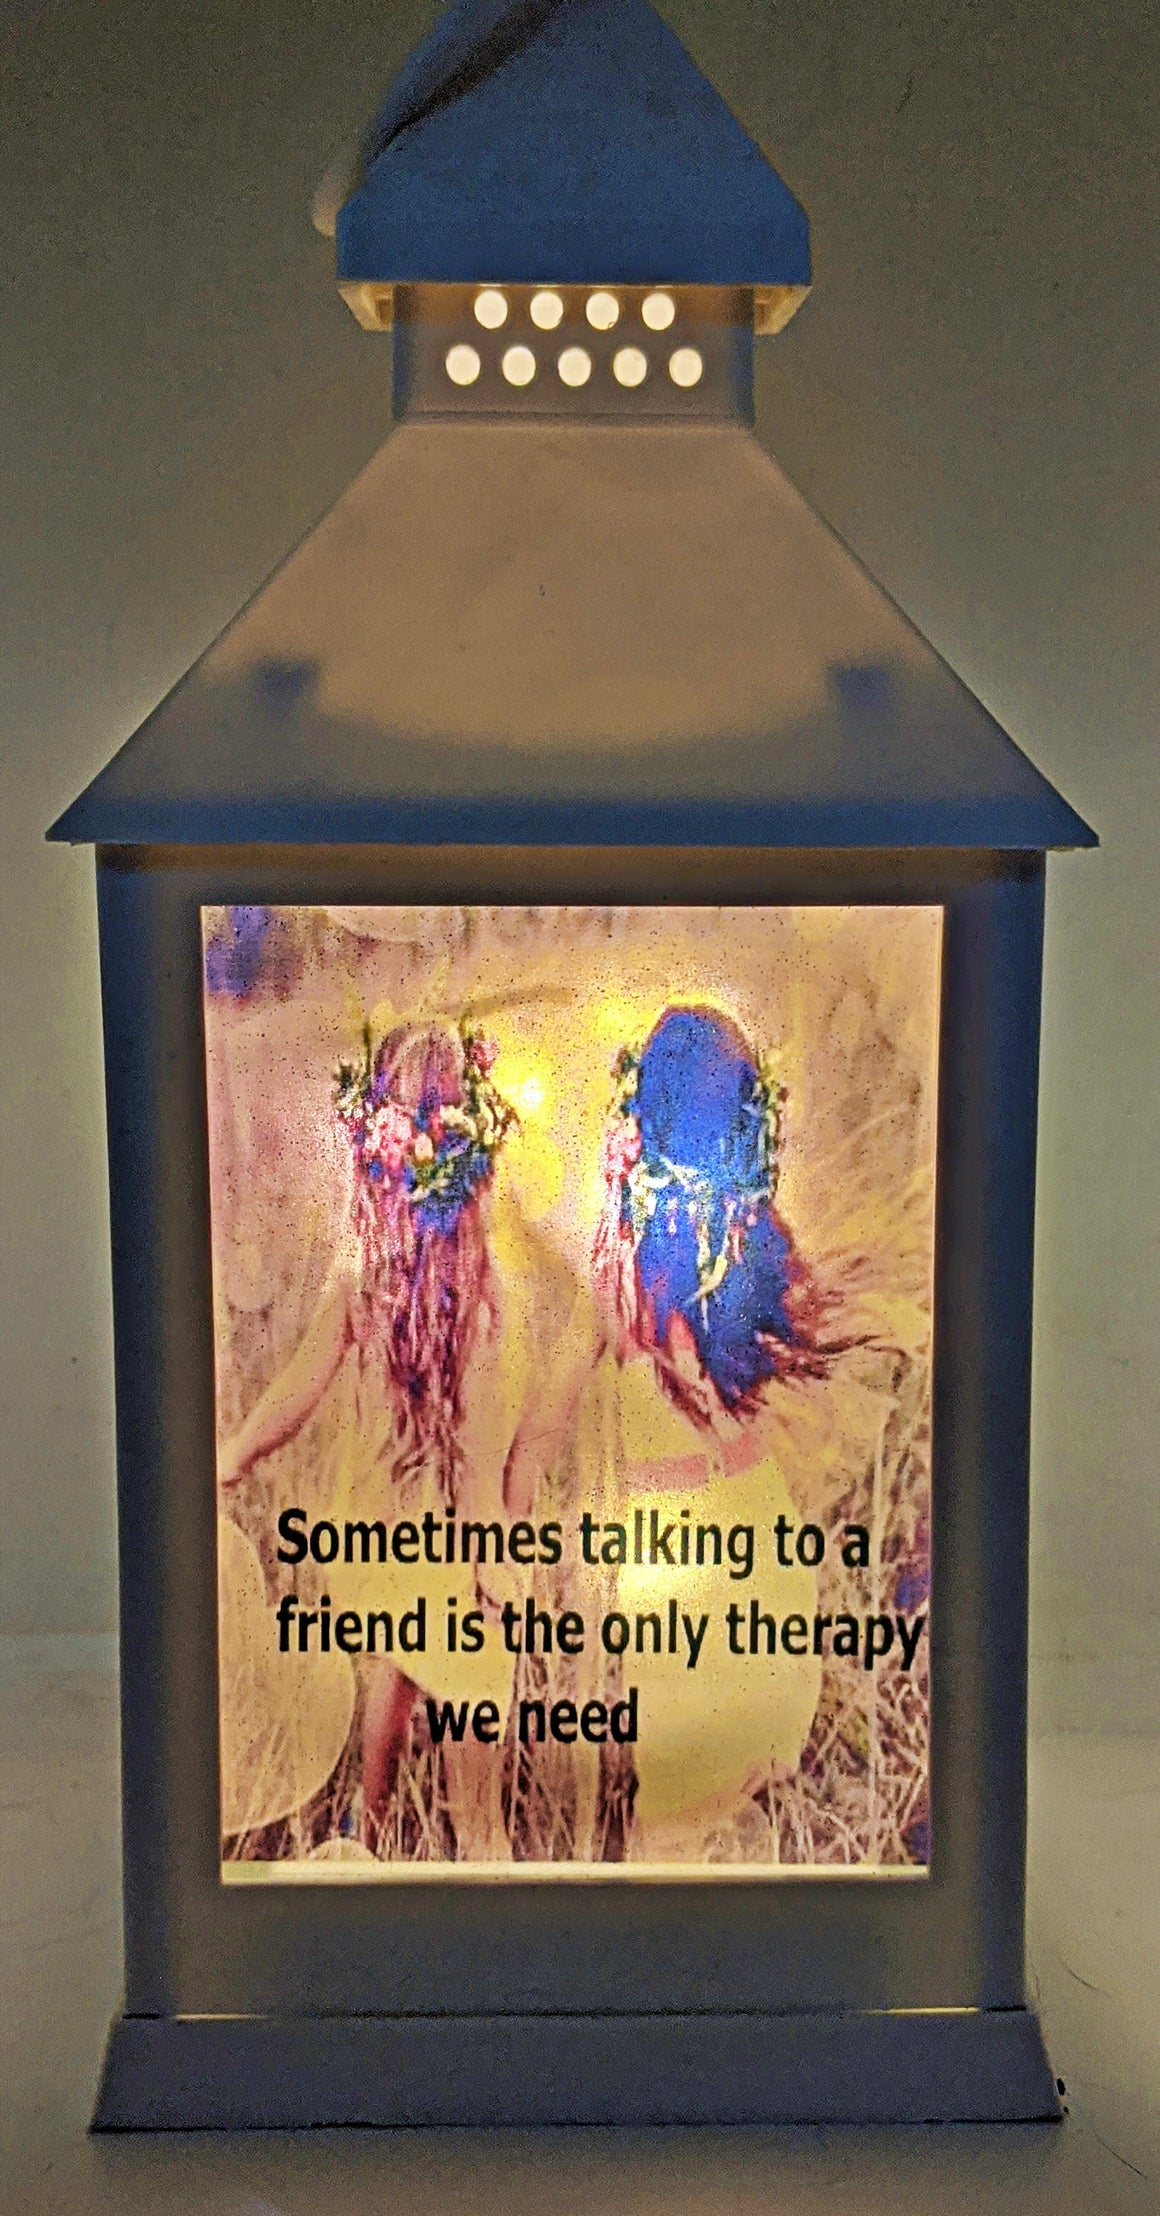 Sentimental Friendship LED Lantern